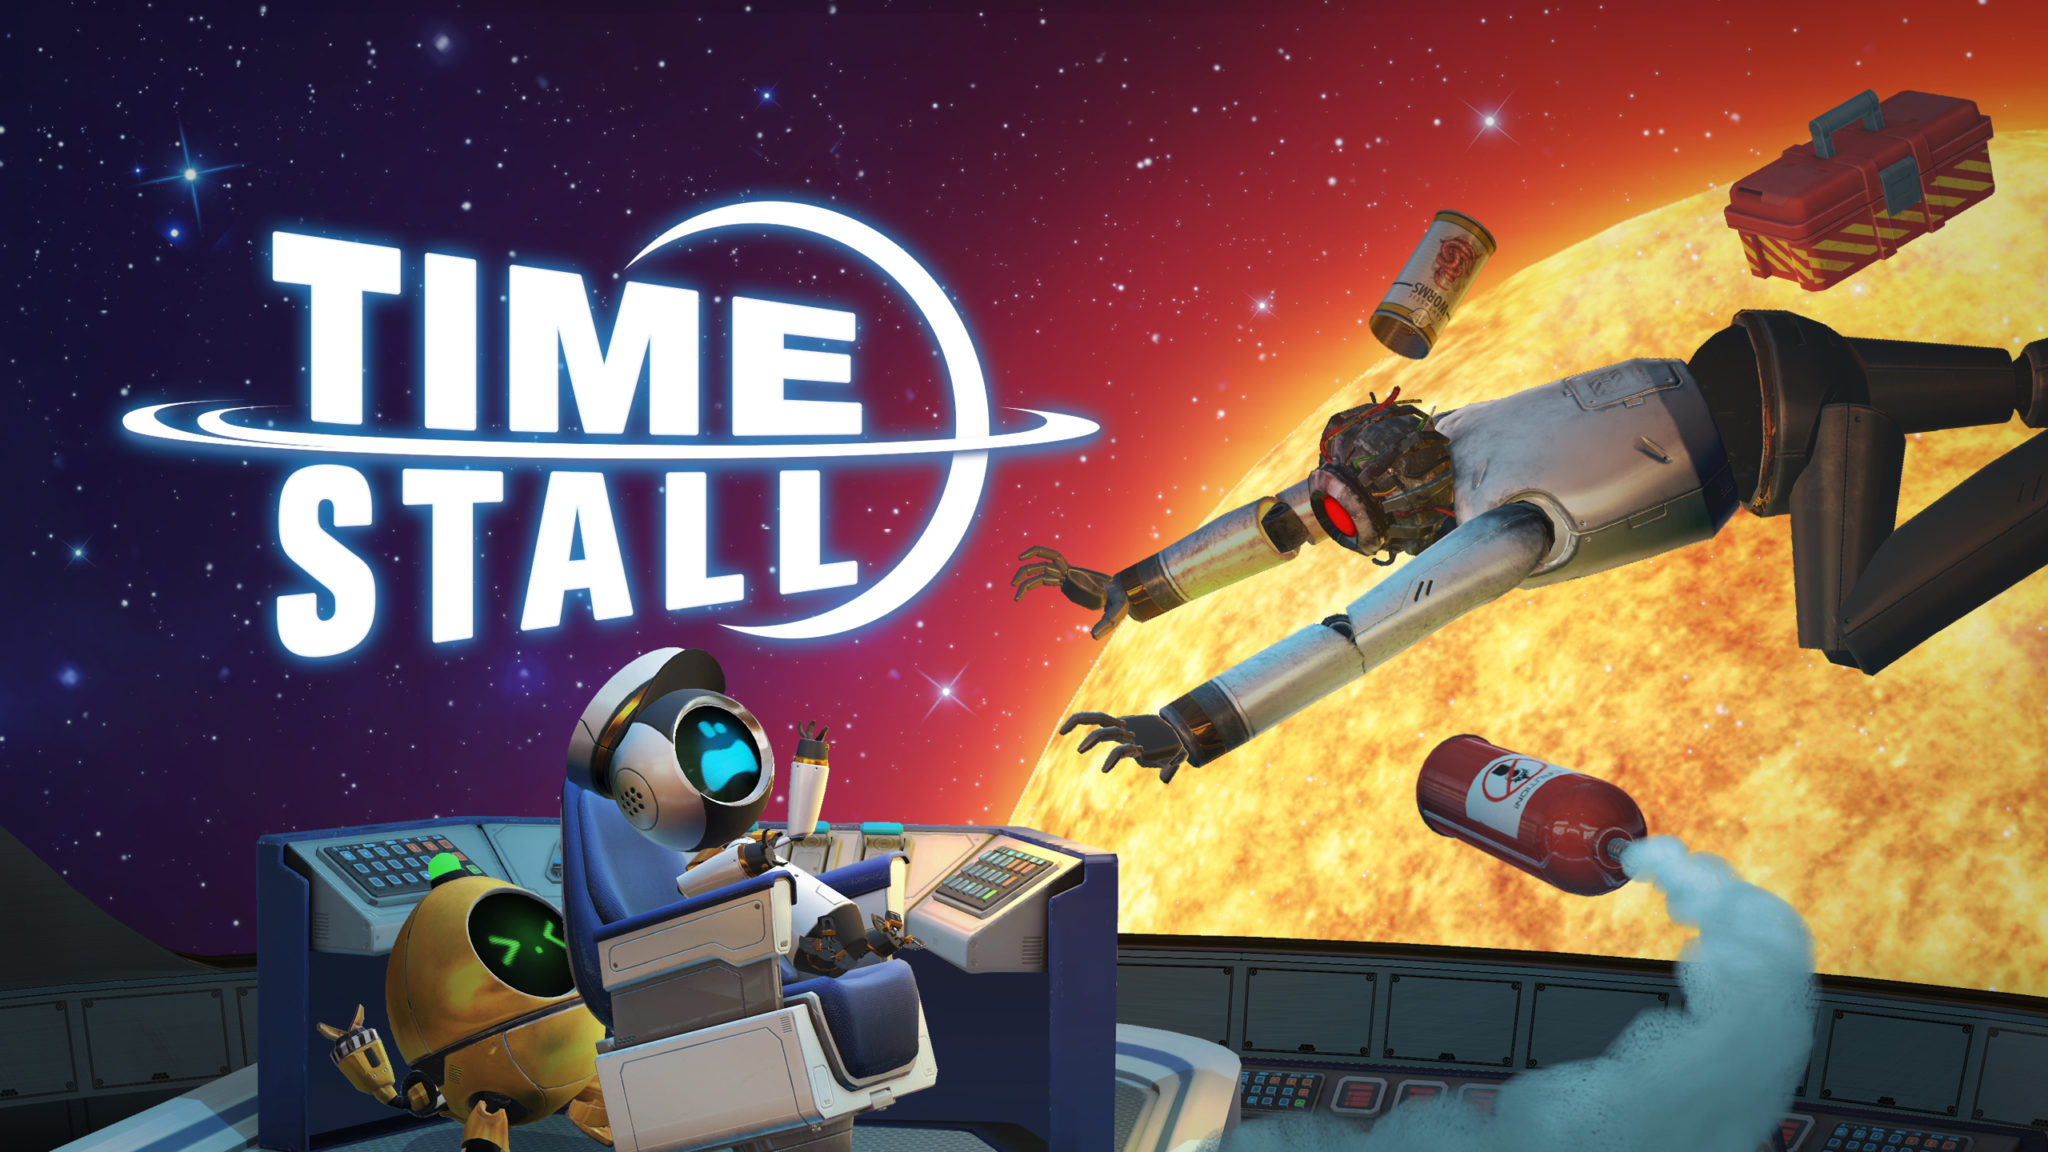 Time Stall banner